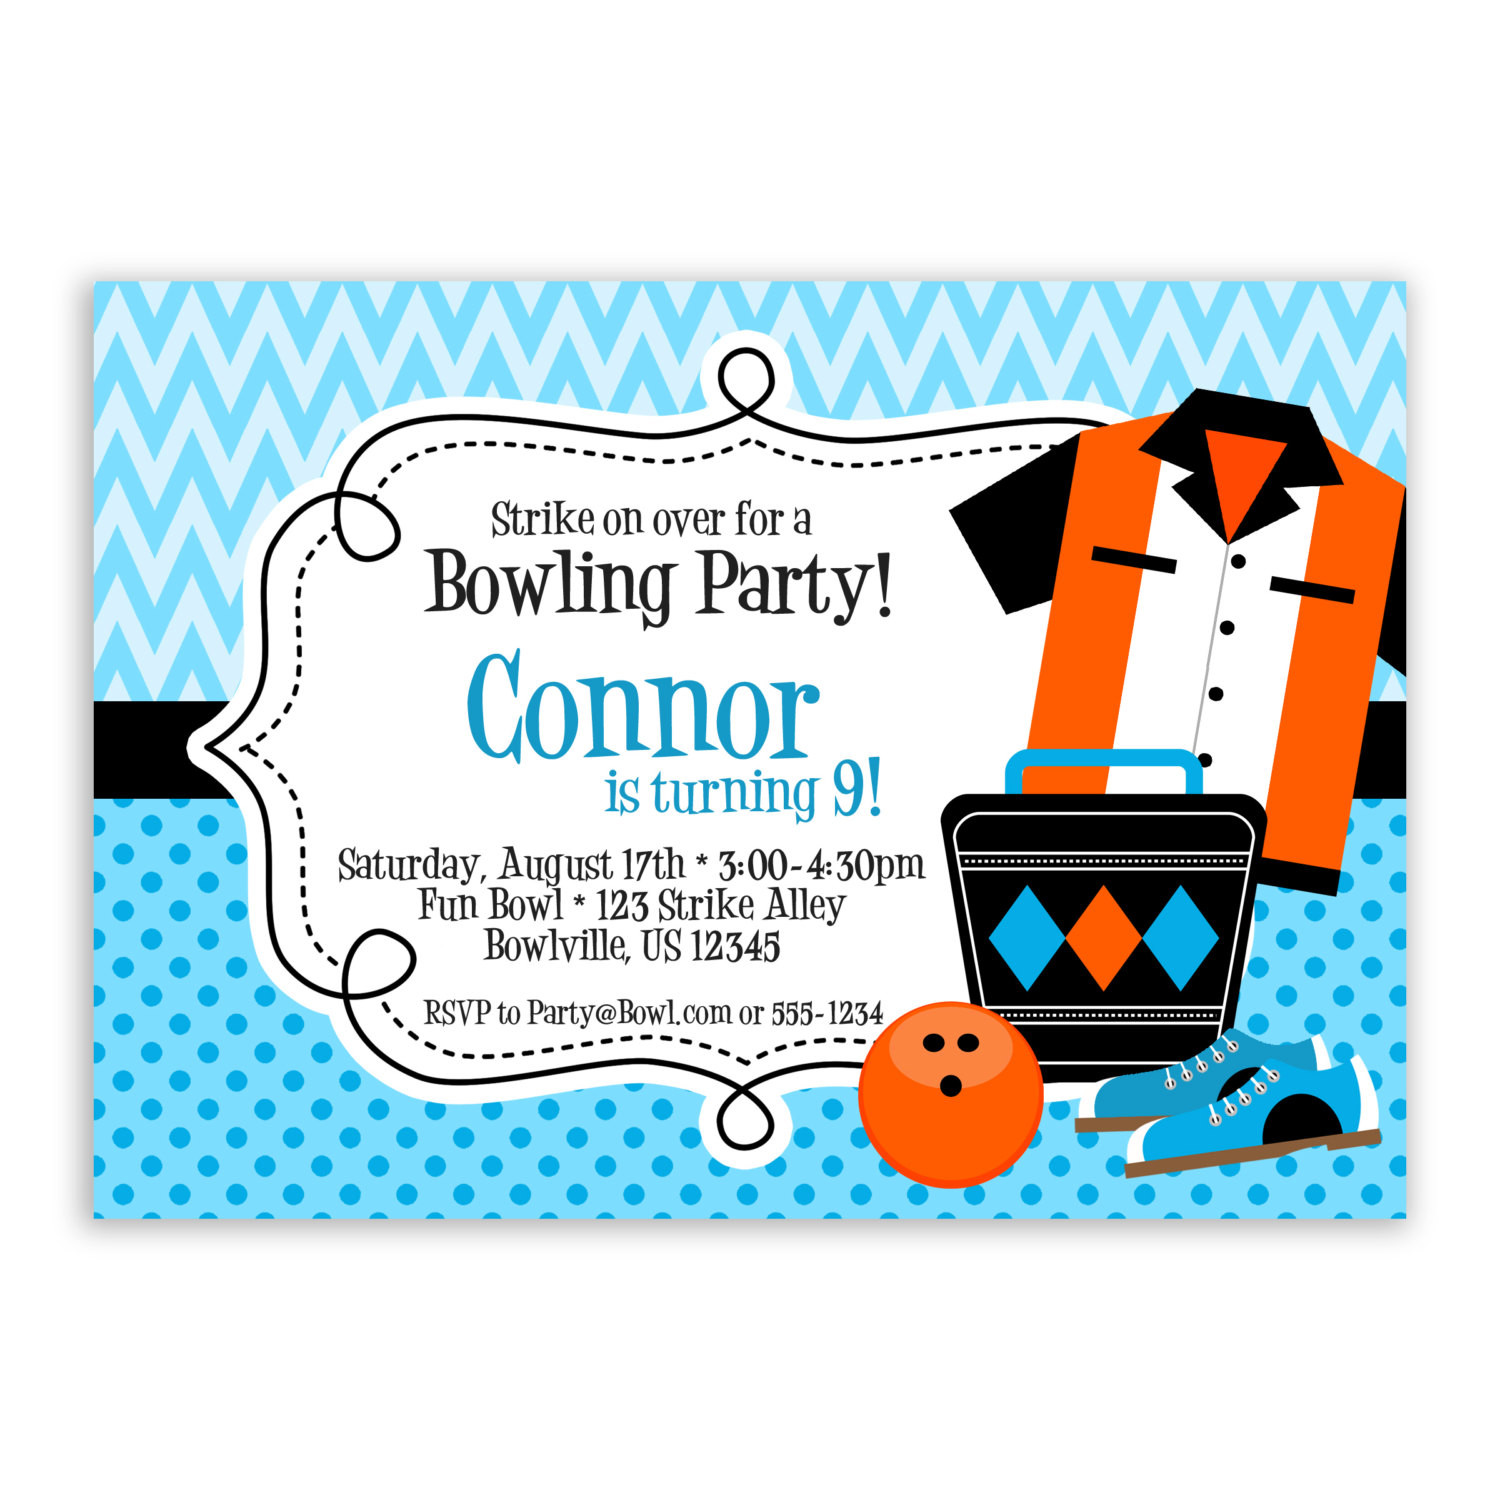 Best ideas about Bowling Birthday Invitations . Save or Pin Bowling Invitation Blue Chevron and Orange Bowling Ball Now.